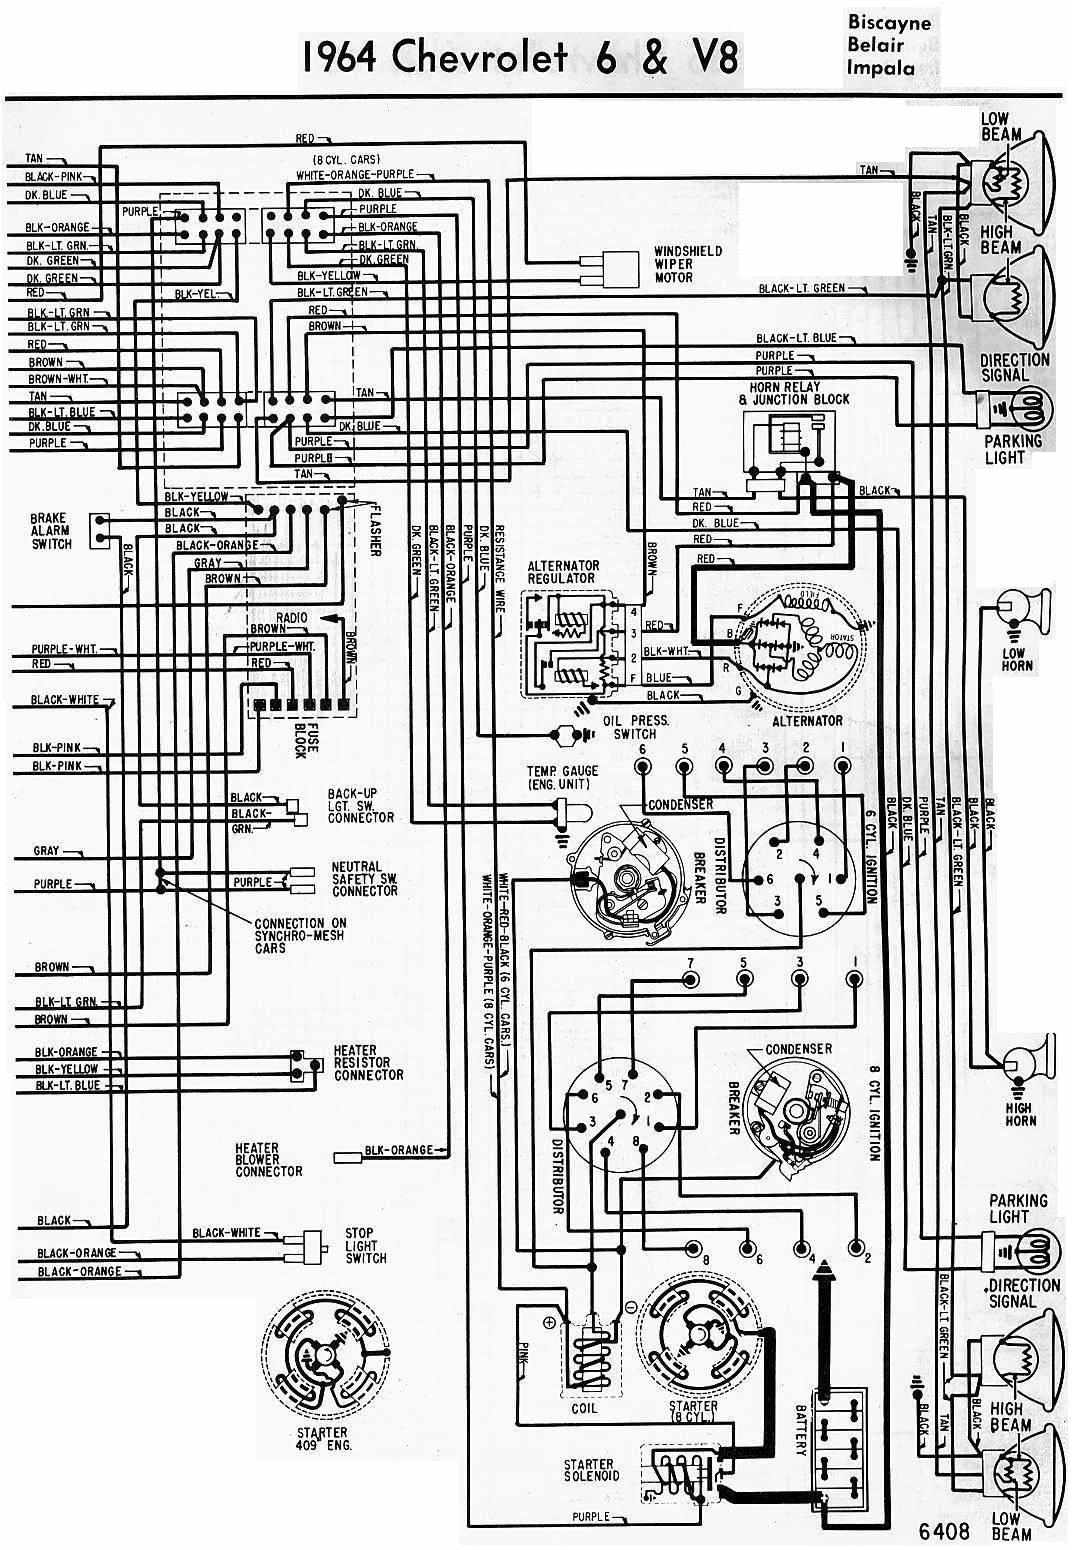 1965 Chevy Impala Ignition Switch Wiring Diagram Library Diagrams Of Chevrolet Corvette Part 1 Electrical And All 1072x1550